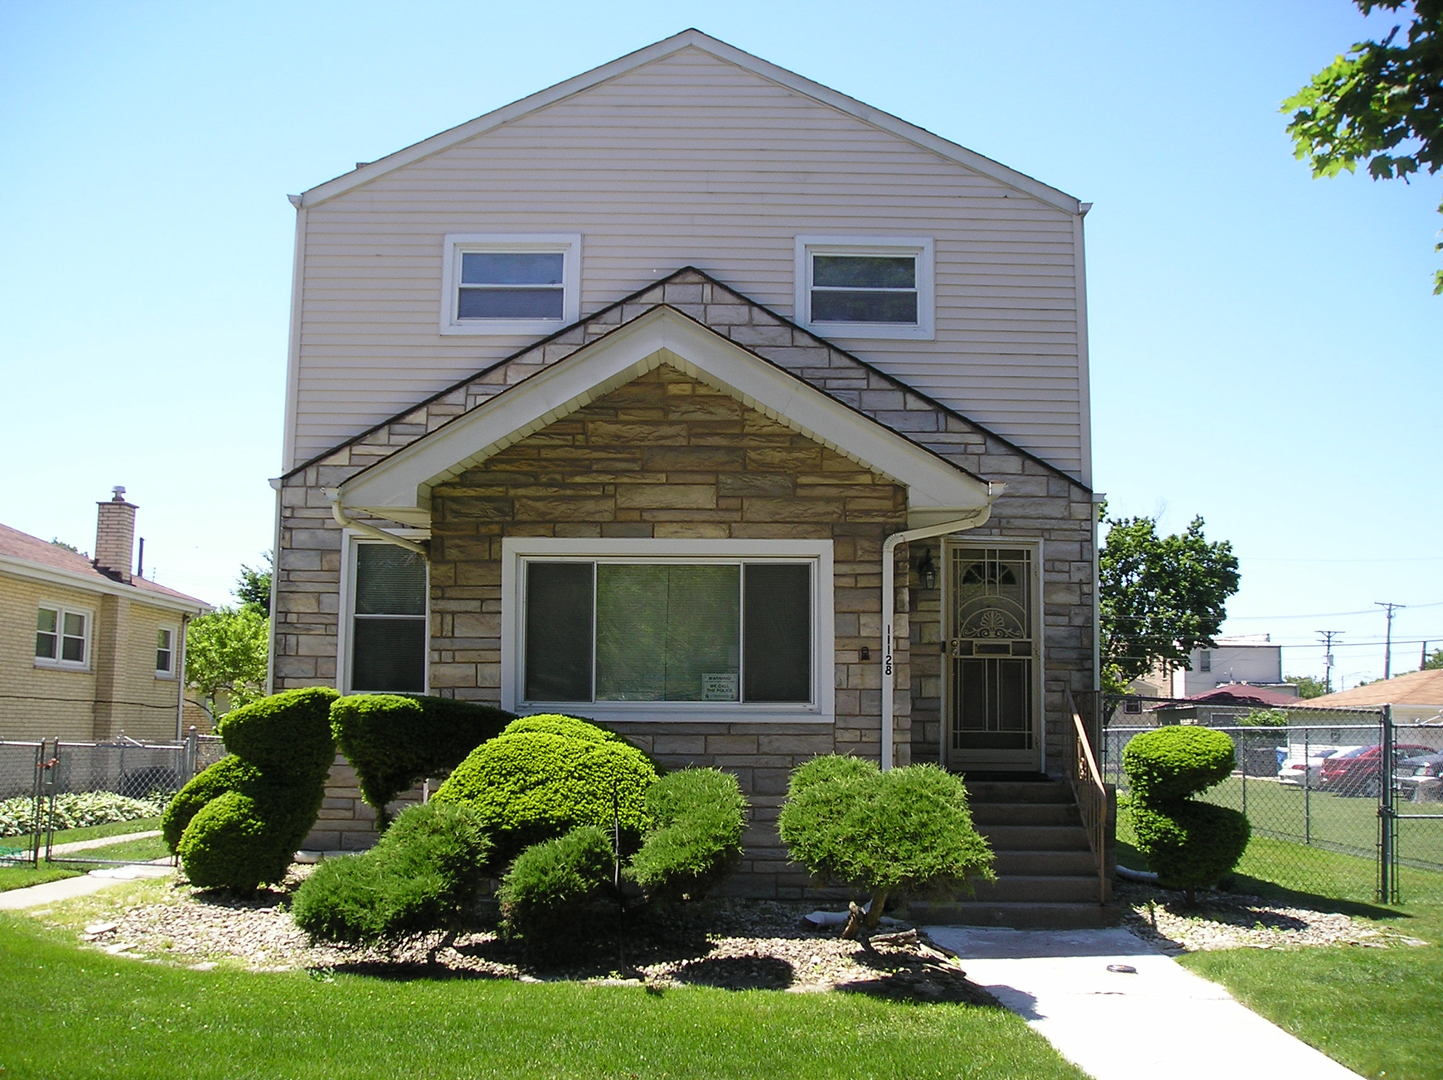 Photo of 11128 S Loomis Street, Chicago, IL 60643